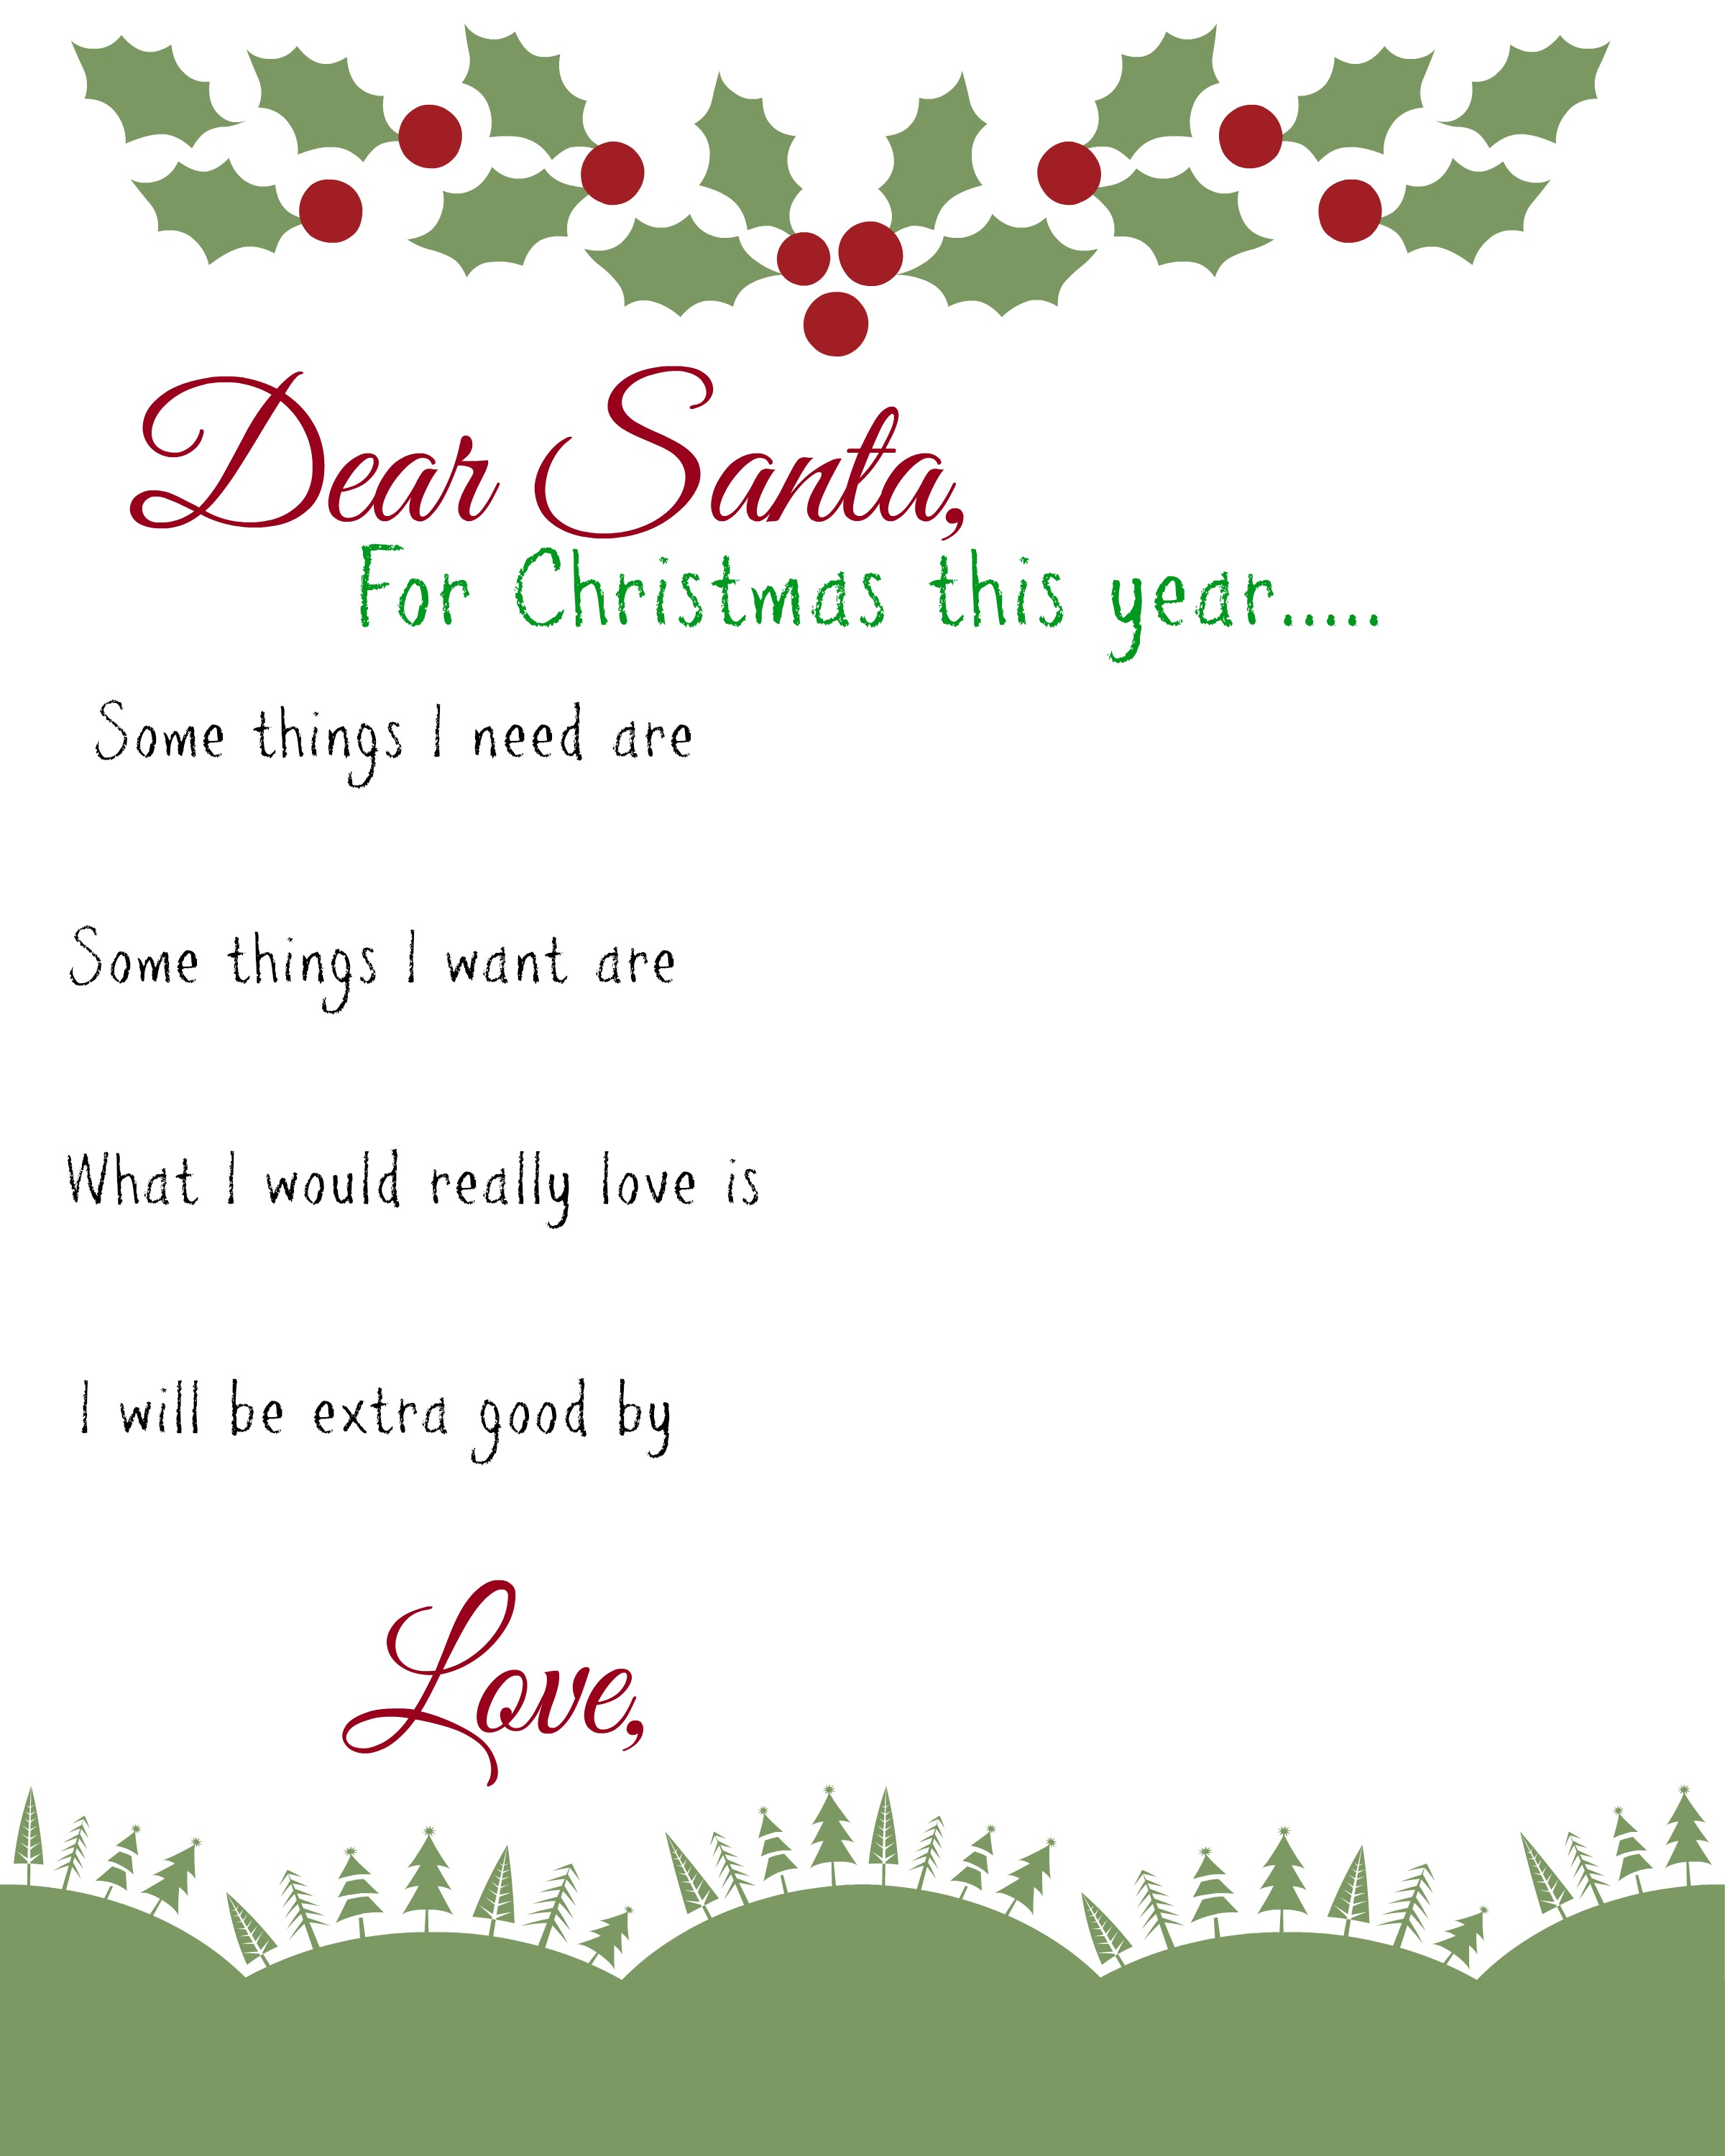 image about Christmas Wish List Printable named Expensive Santa: Children Drive Checklist Printable - Active Mothers Helper